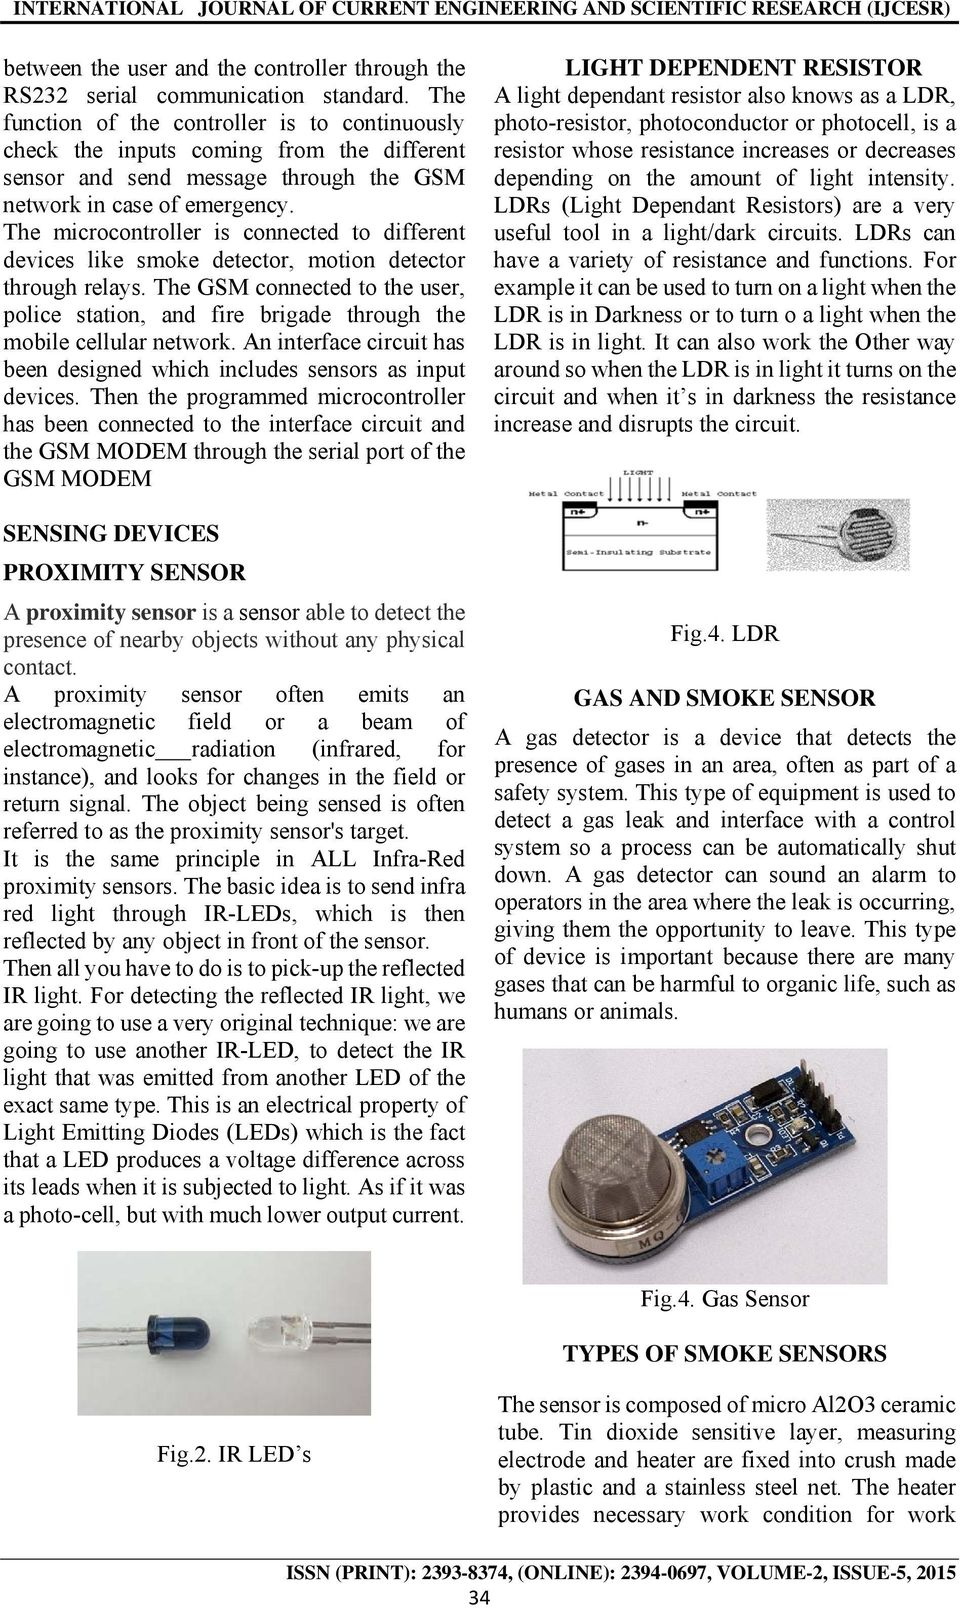 Gsm Based Industrial Security System Pdf Device Controlling Using Bluetooth Microtronics The Microcontroller Is Connected To Different Devices Like Smoke Detector Motion Through Relays